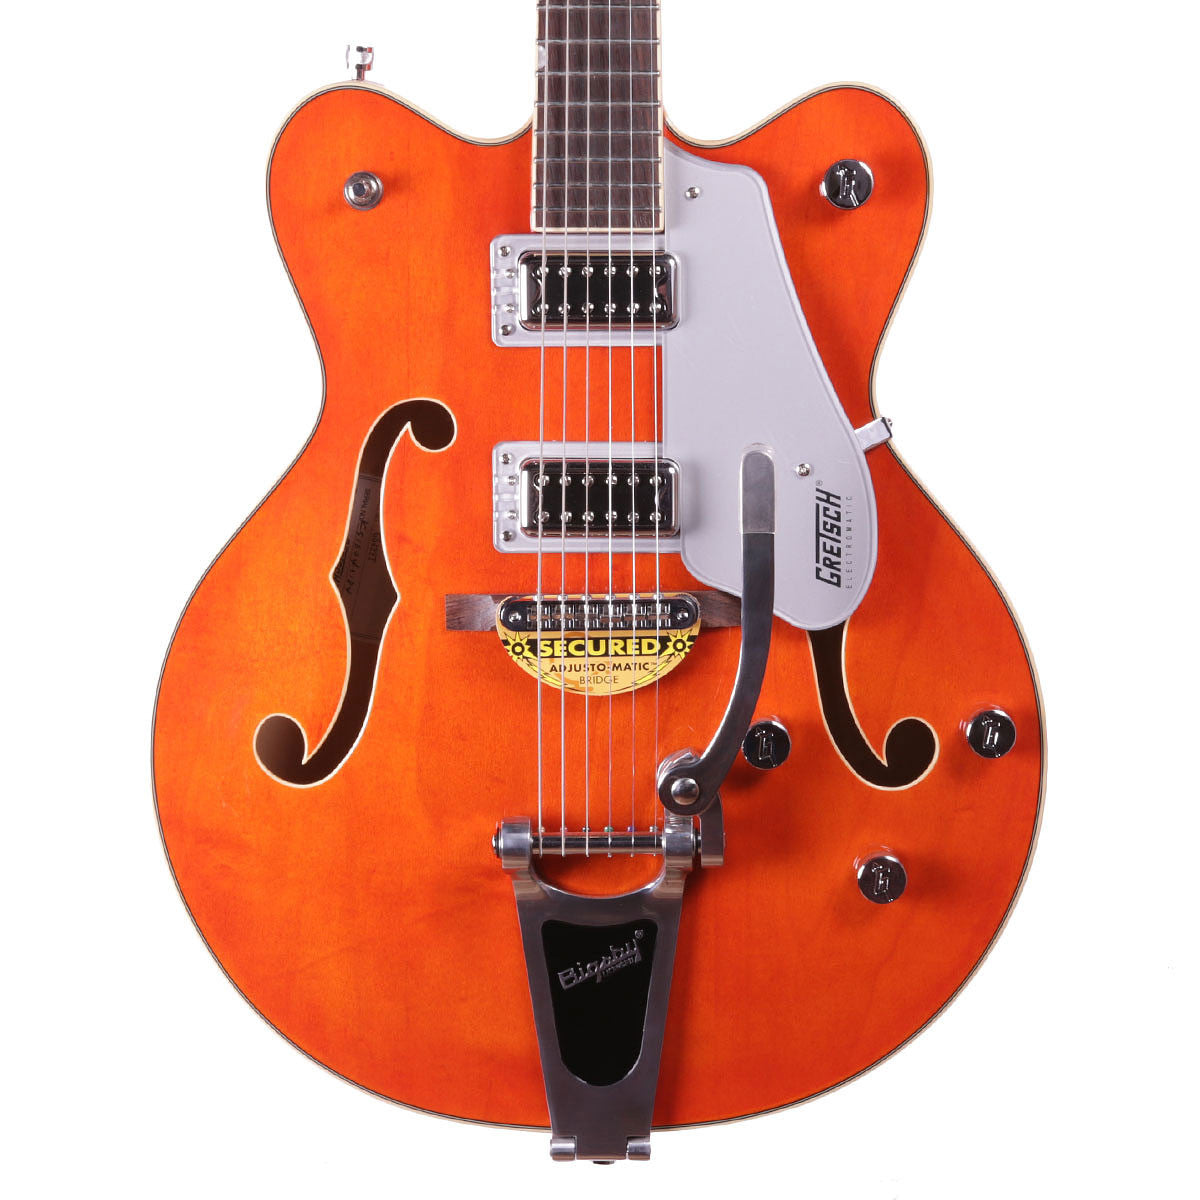 Gretsch G5422T 2016 Electromatic Hollowbody w/Bigsby - Orange - Vintage Guitar Boutique - 1